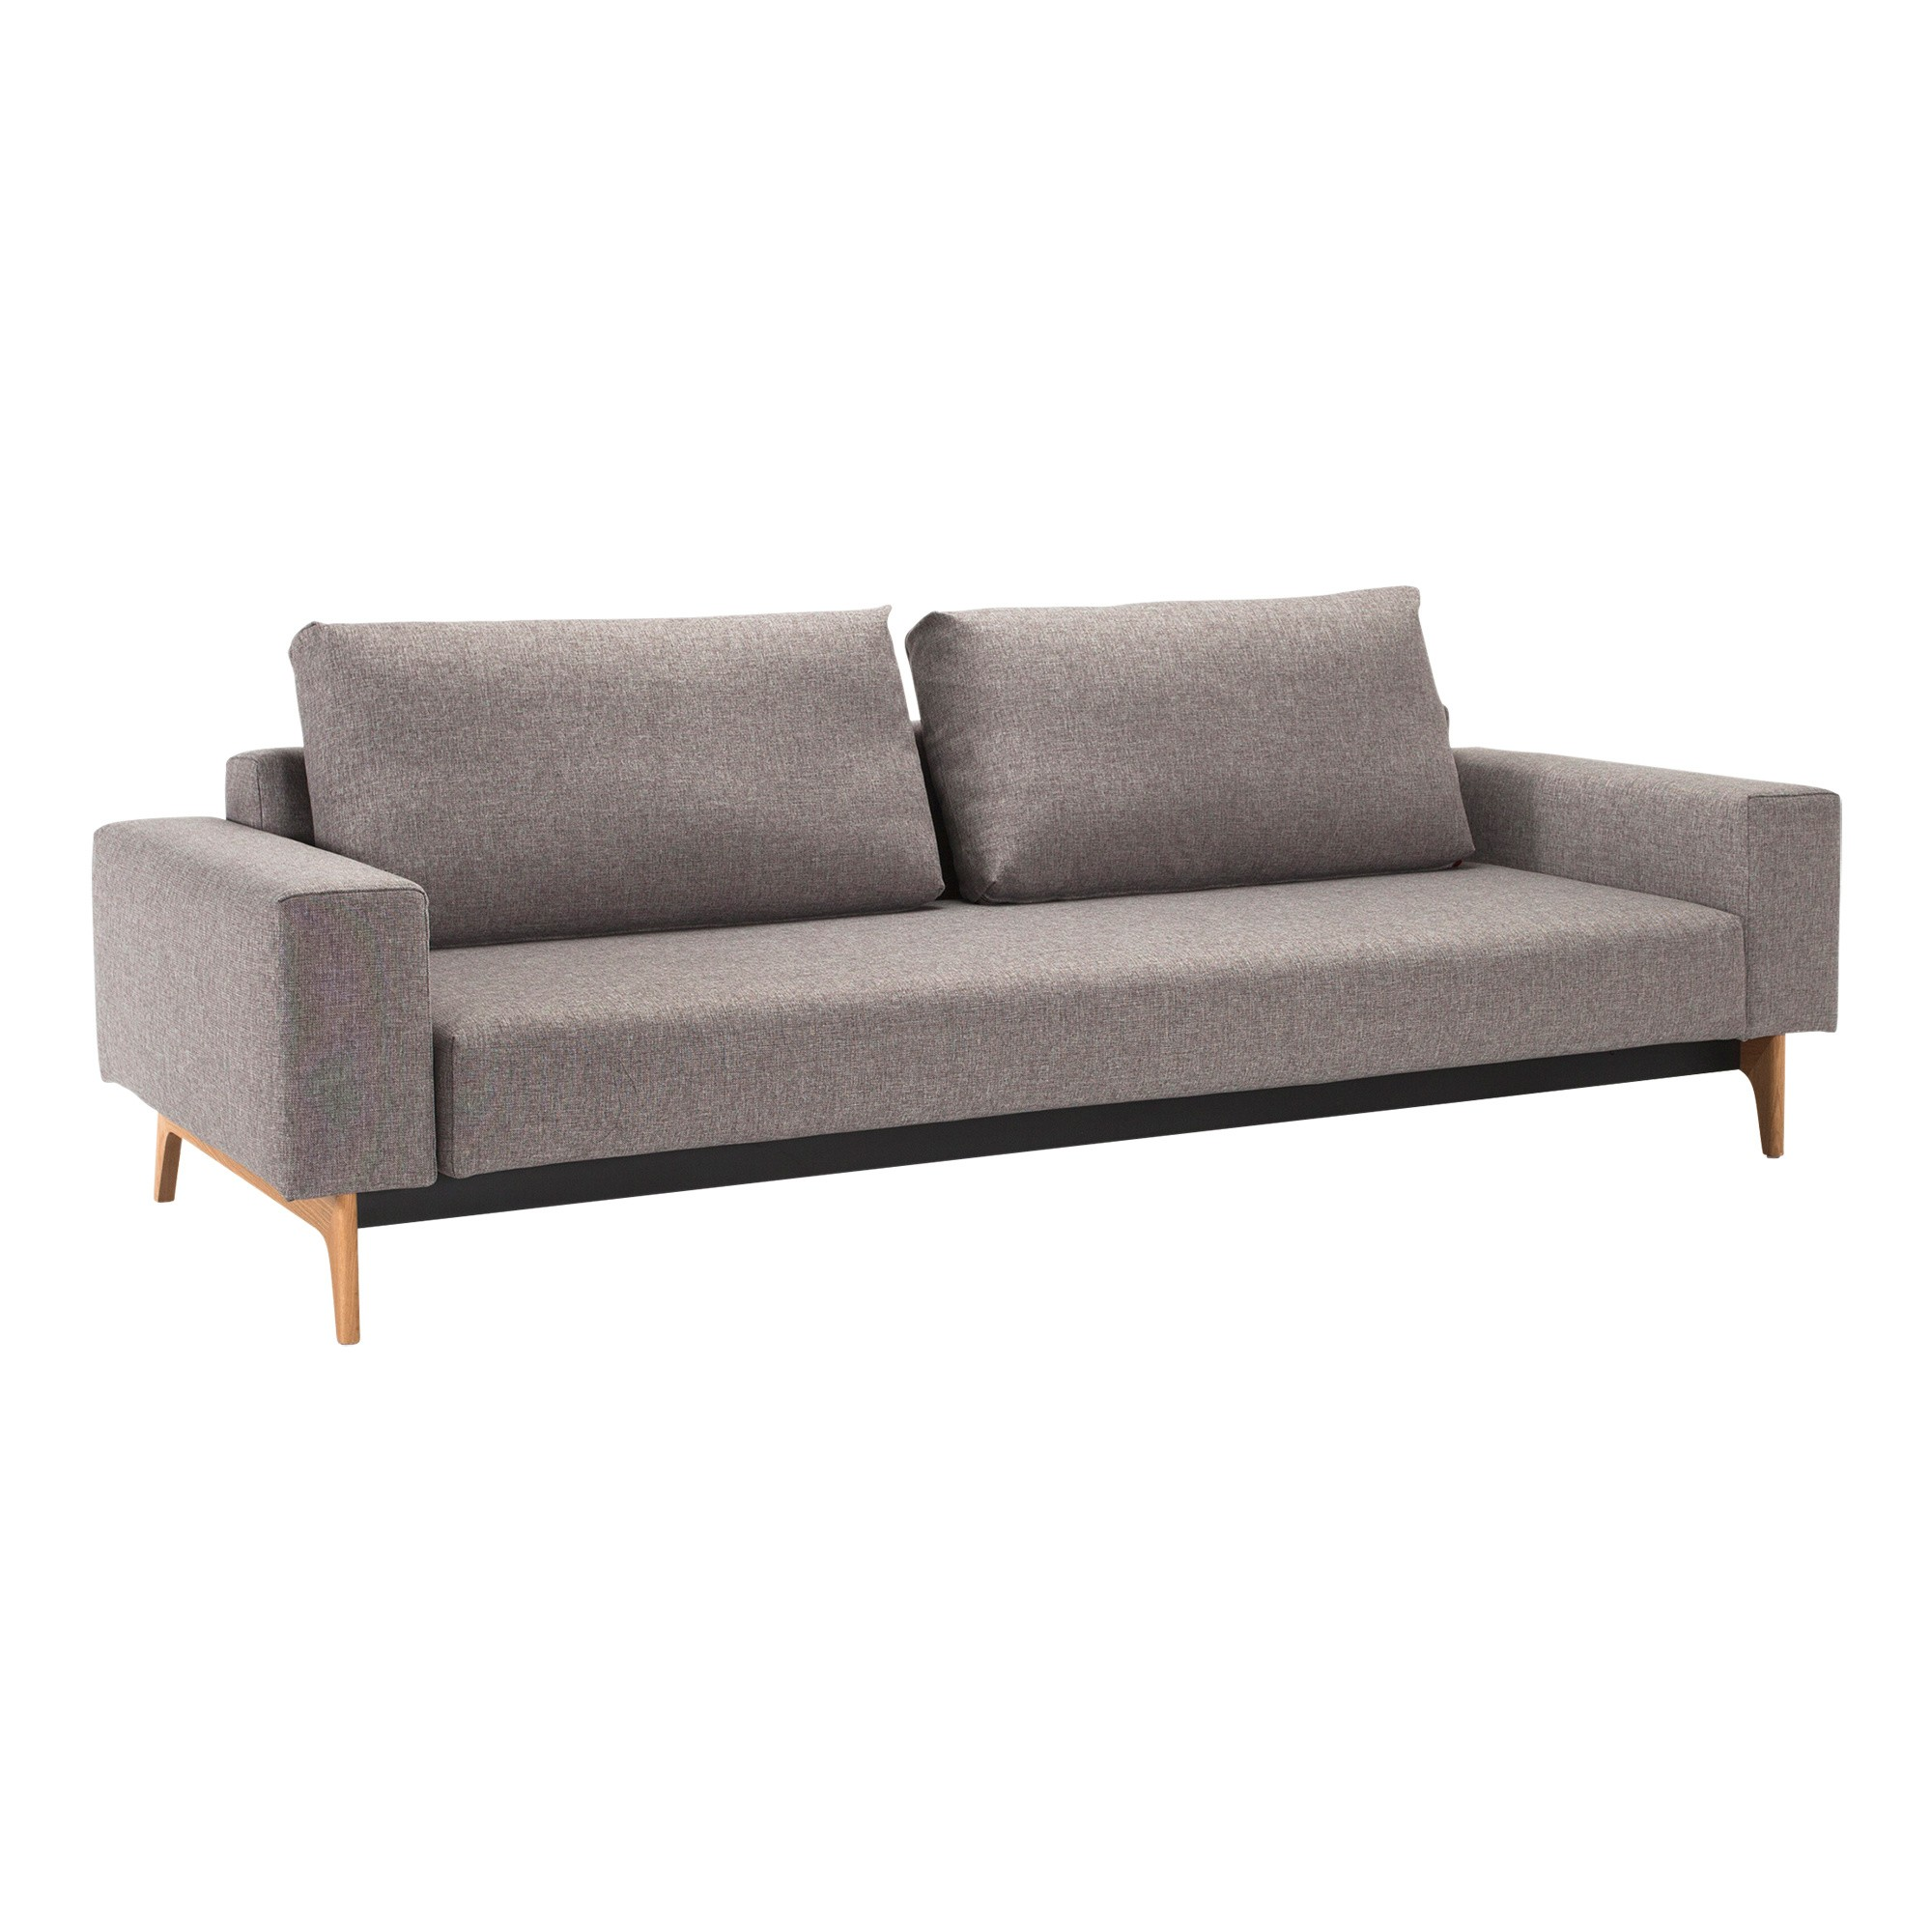 Innovation Idun Sofa Bed With Armrests